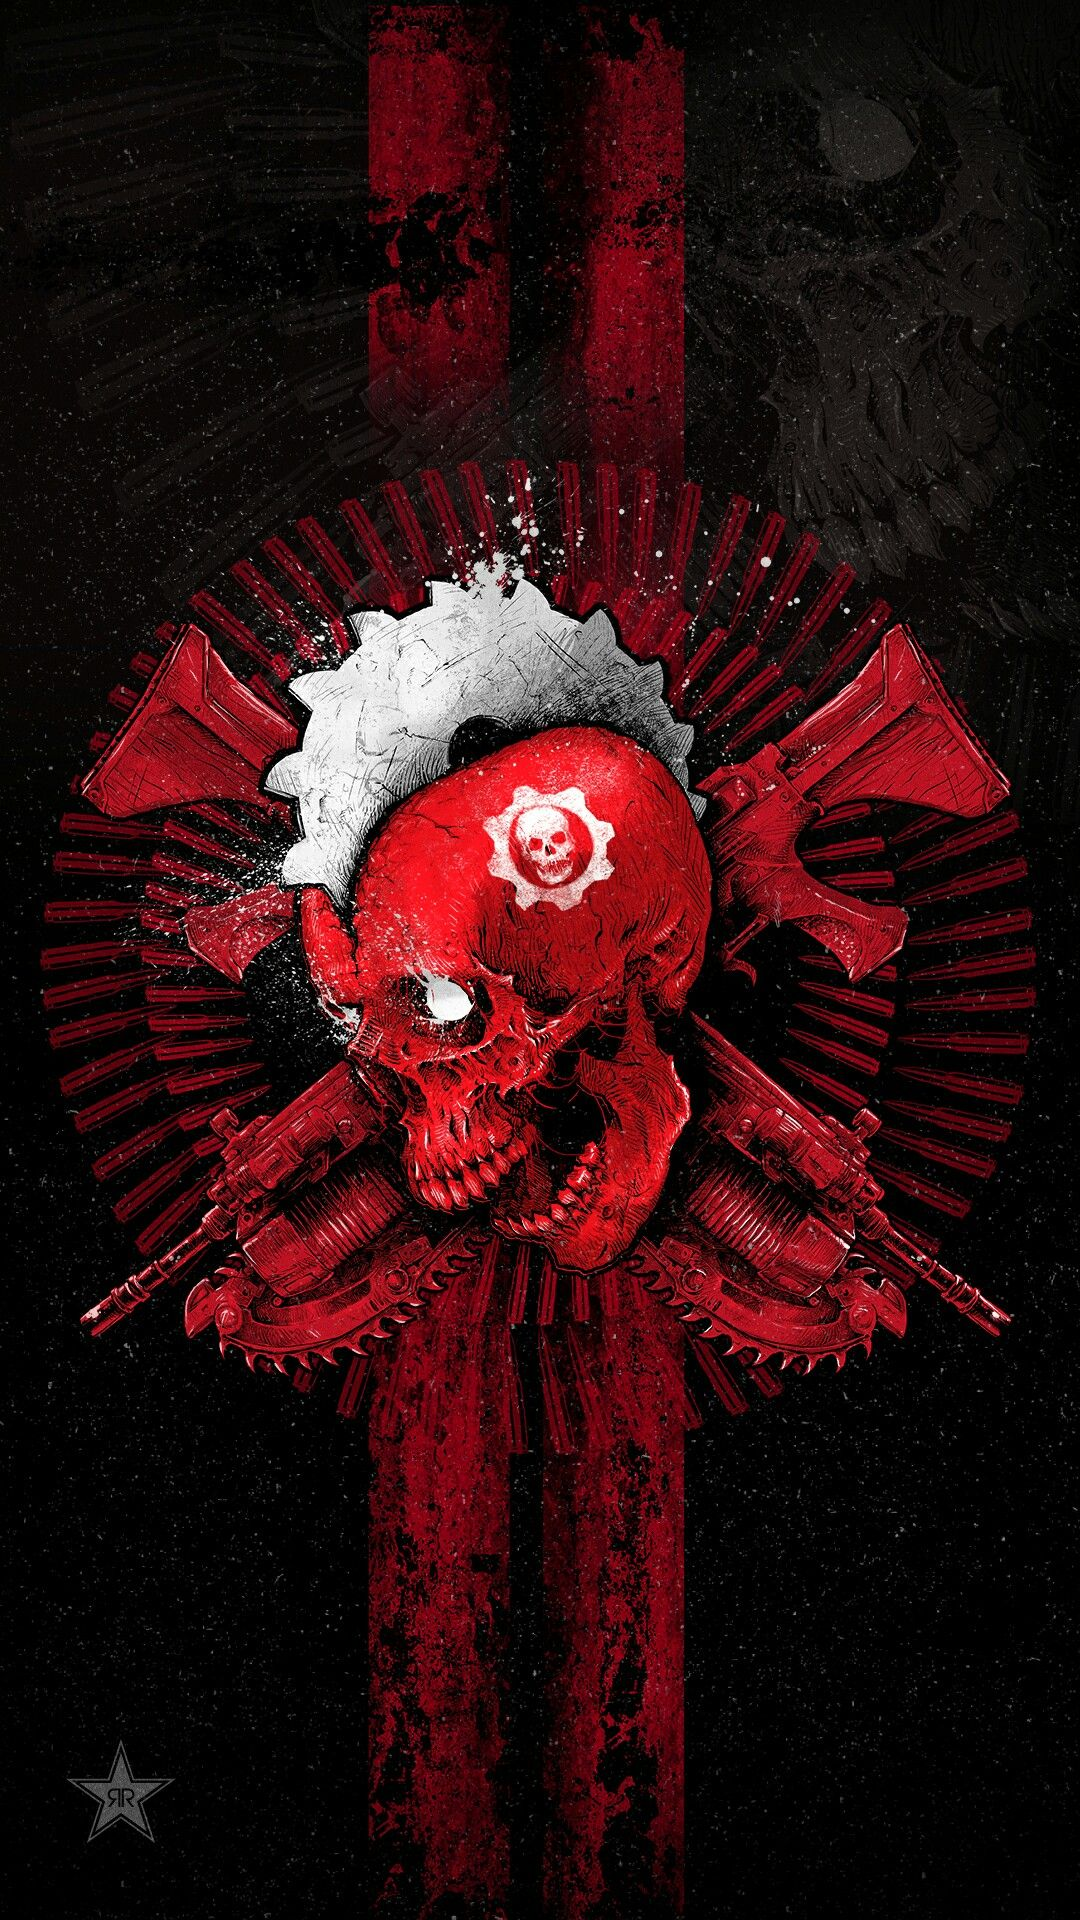 Godmachine Gears Of War 4 Energy Drink Arte De Videojuegos Videojuegos Wallpaper Fondo De Juego